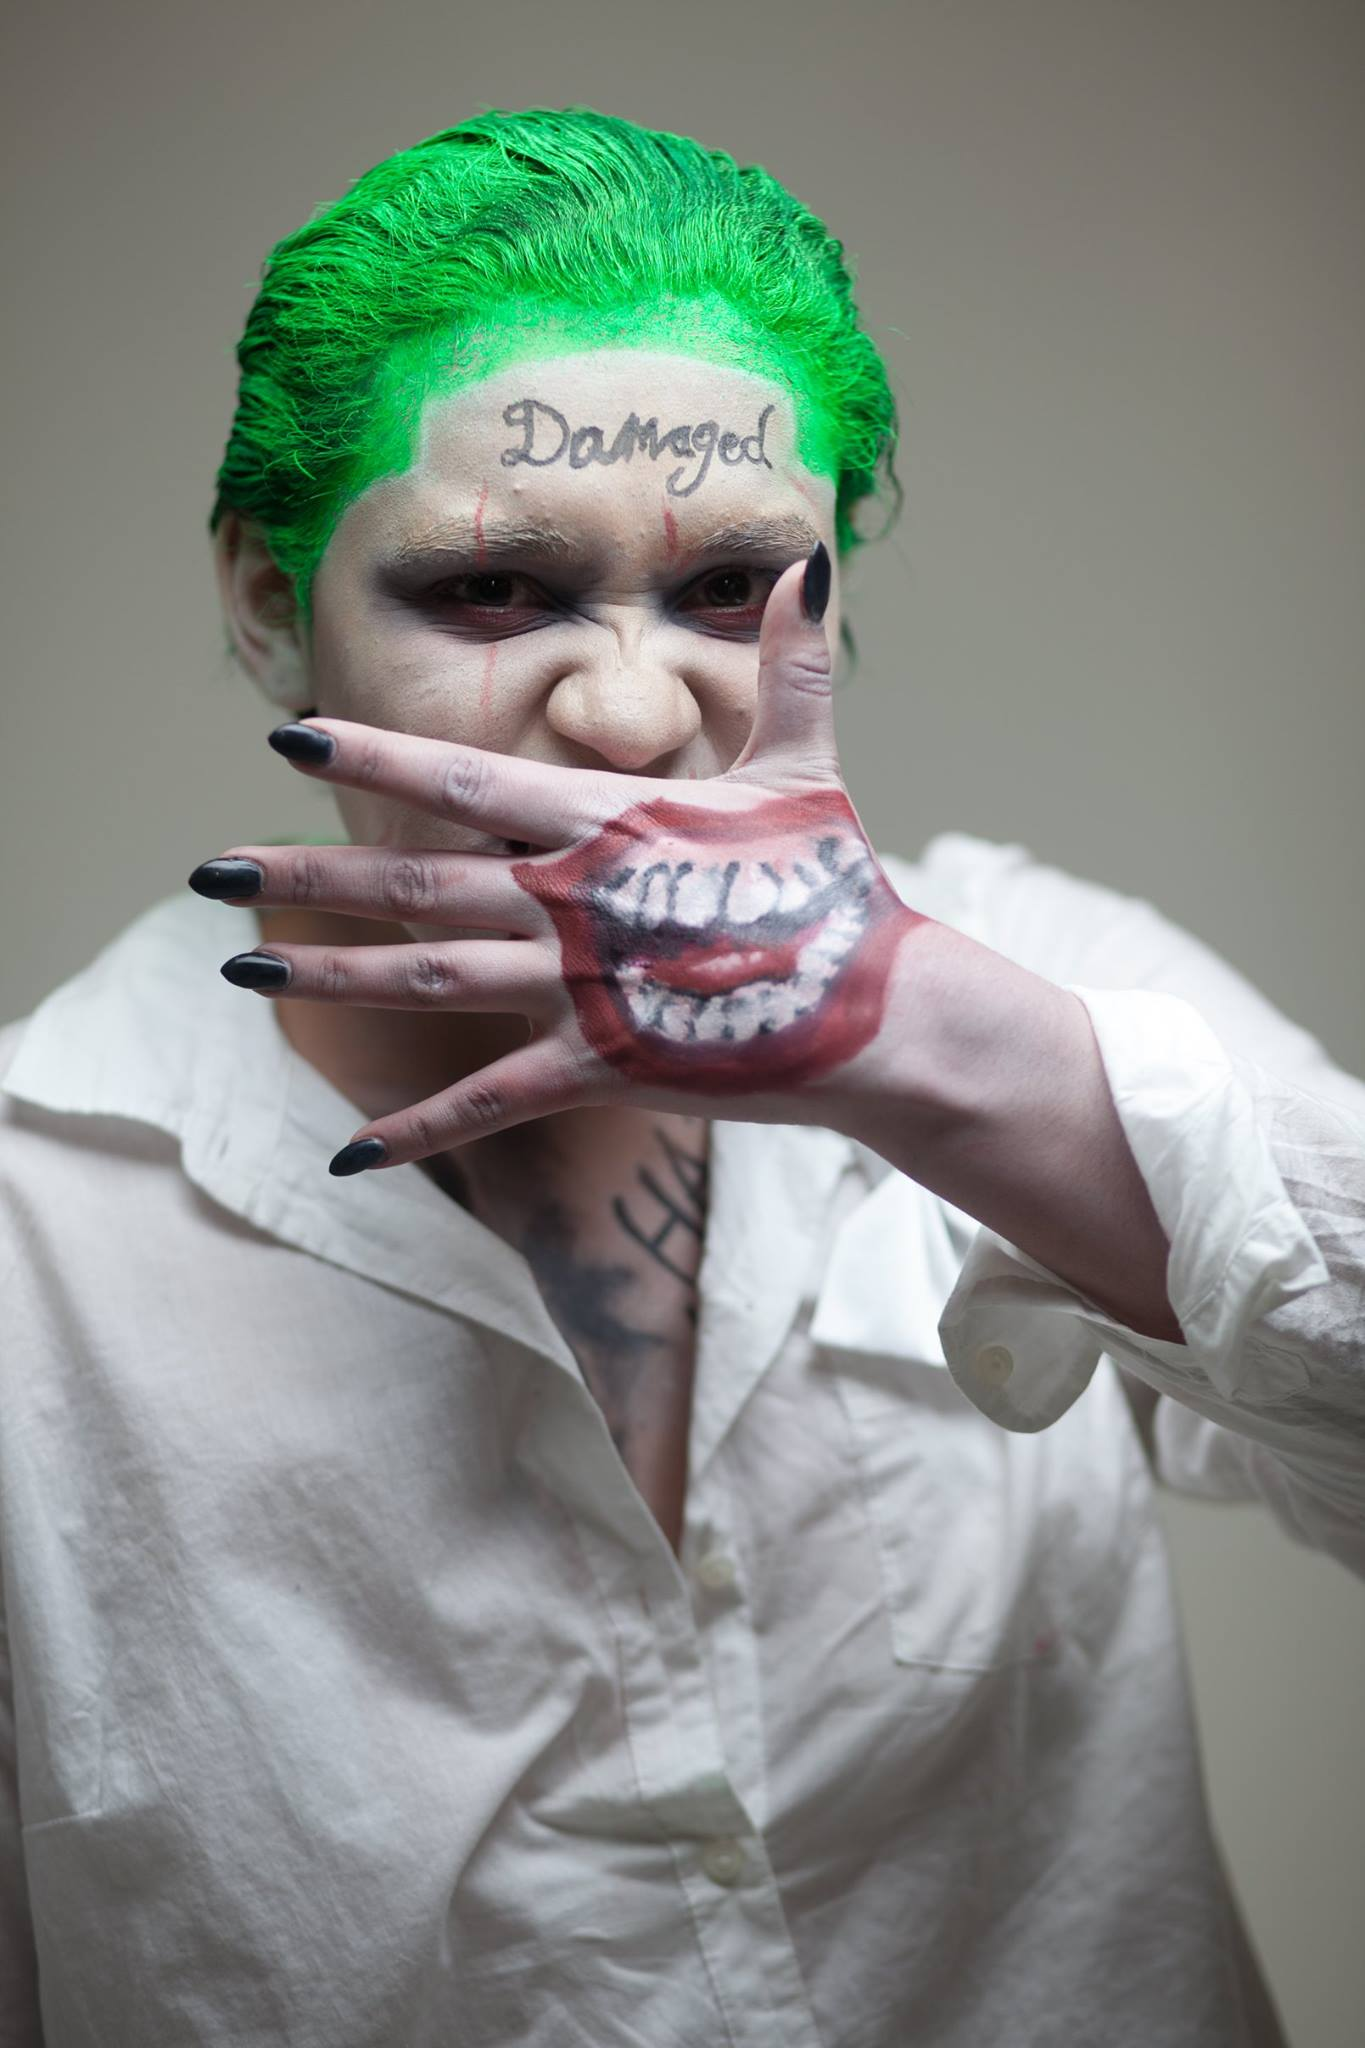 Halloween Joker Makeup